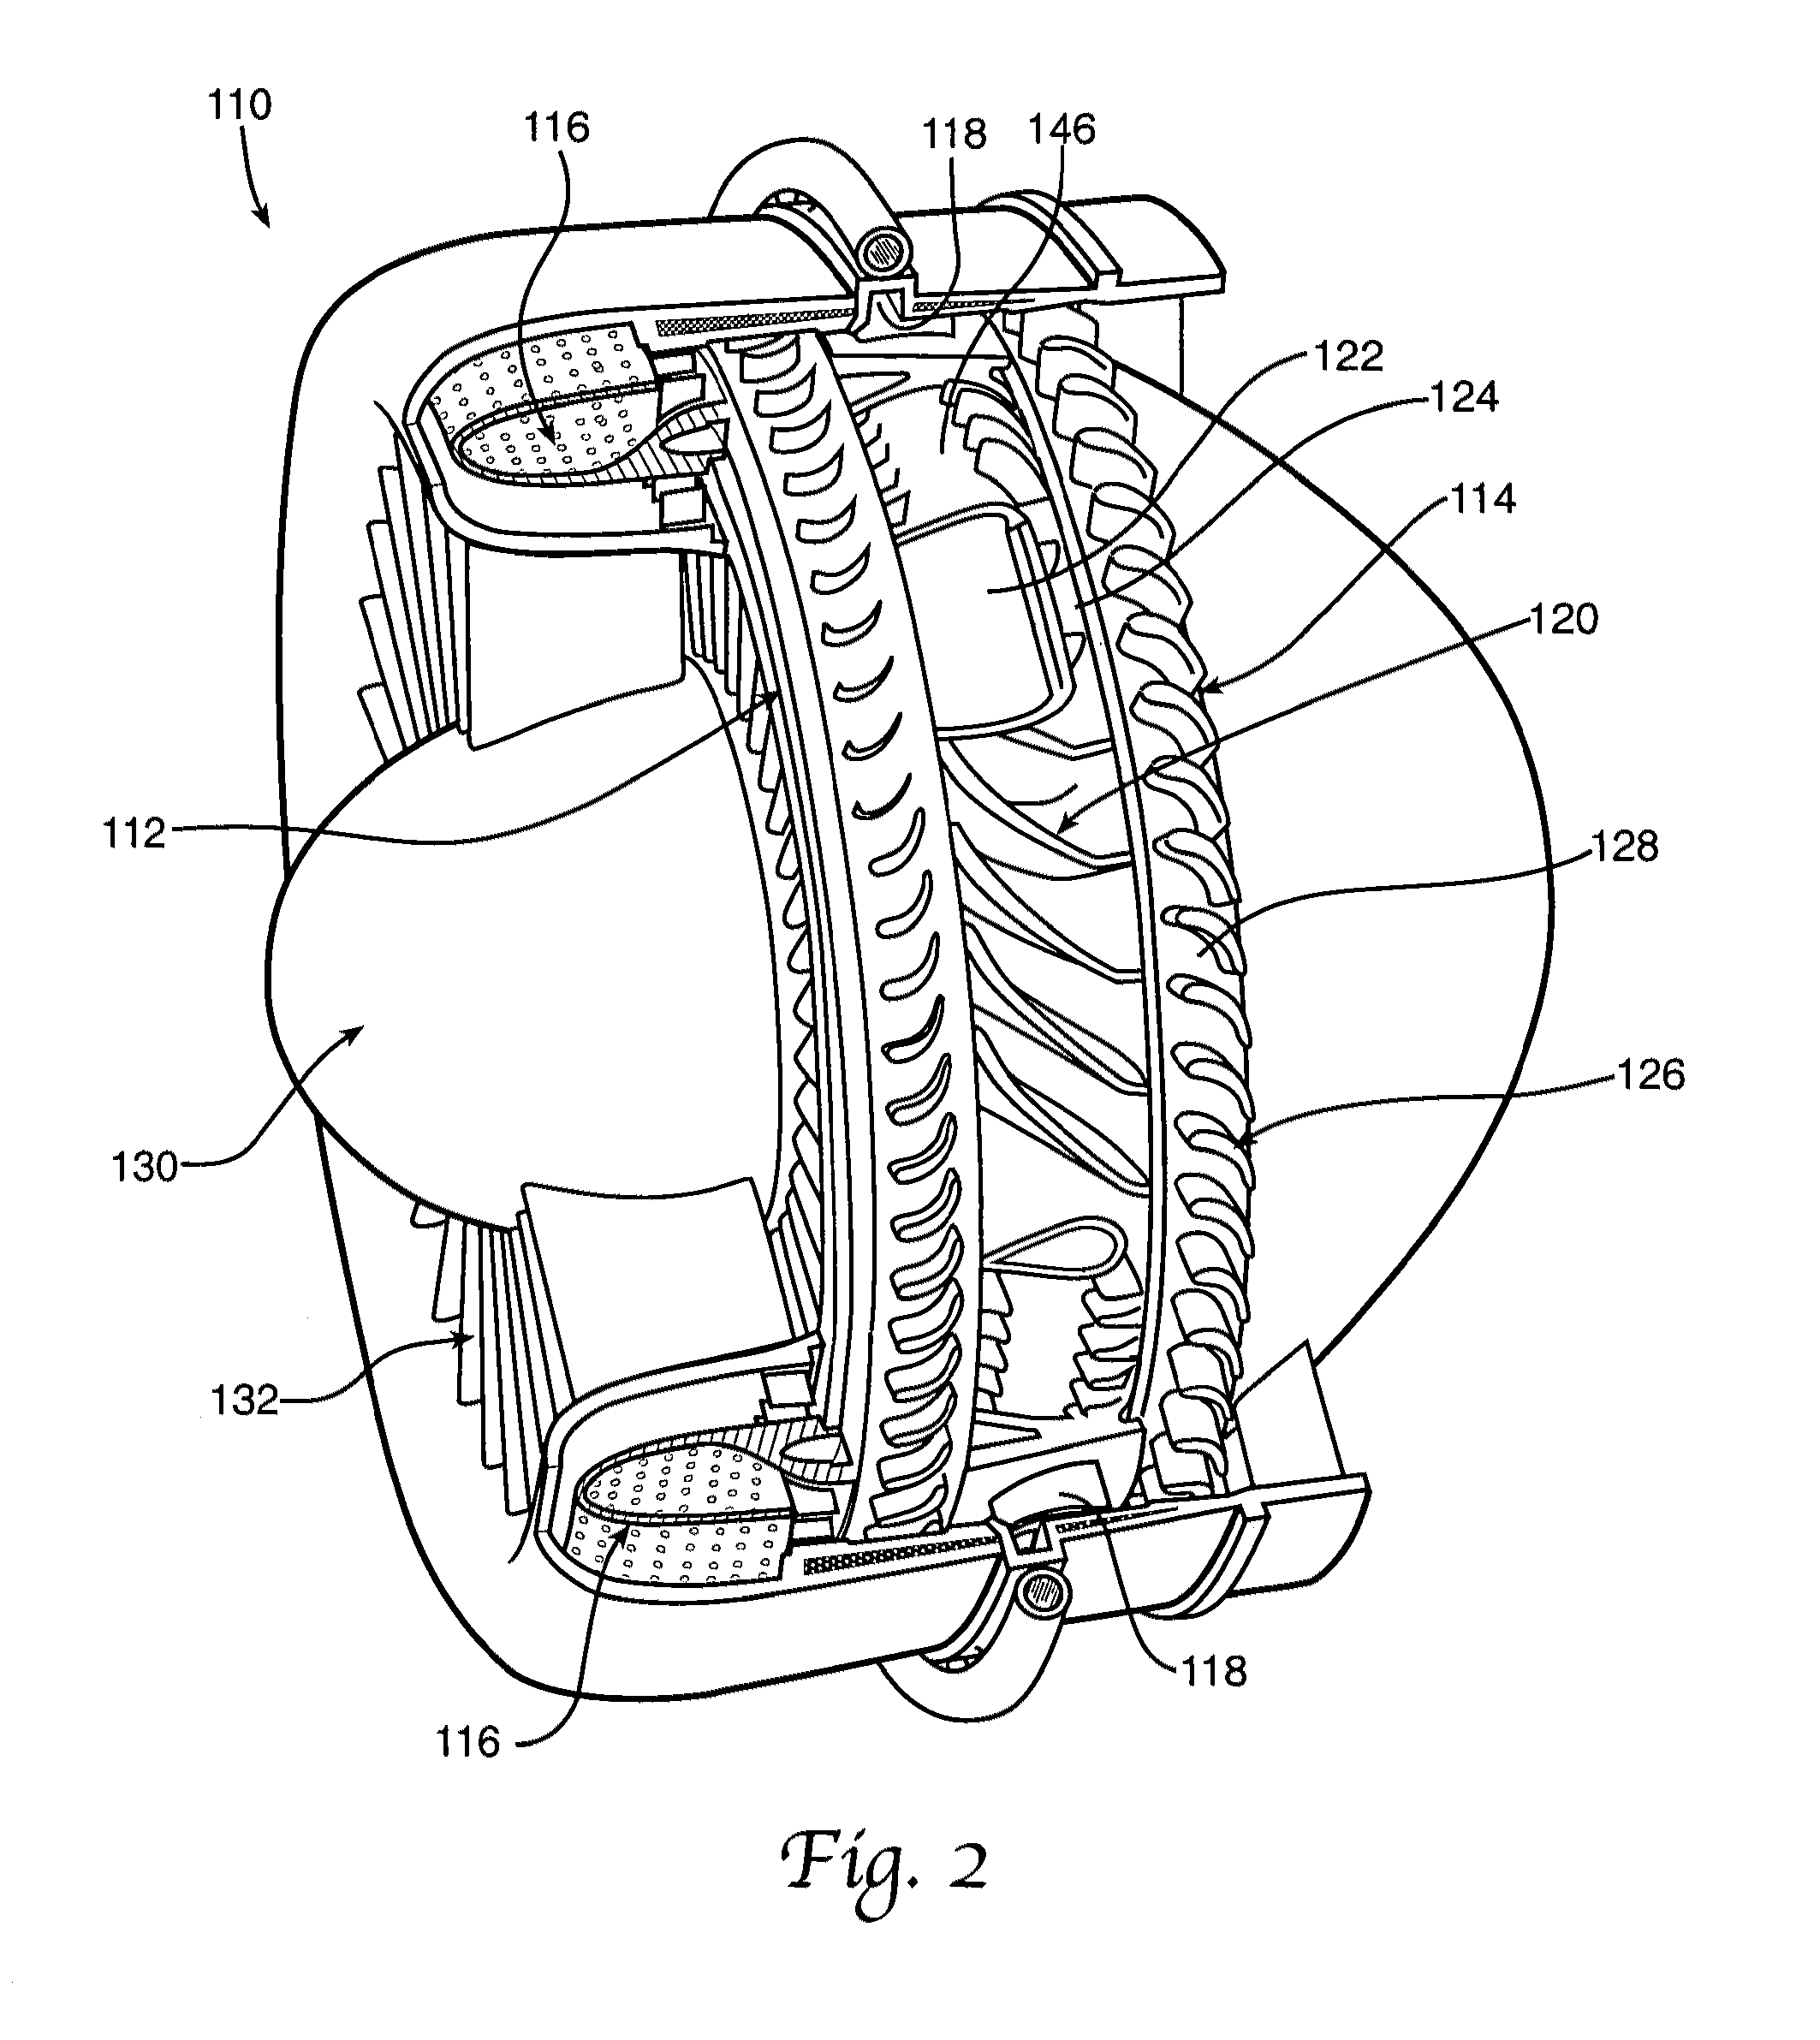 Patent US Gas turbine engine with dual pression rotor